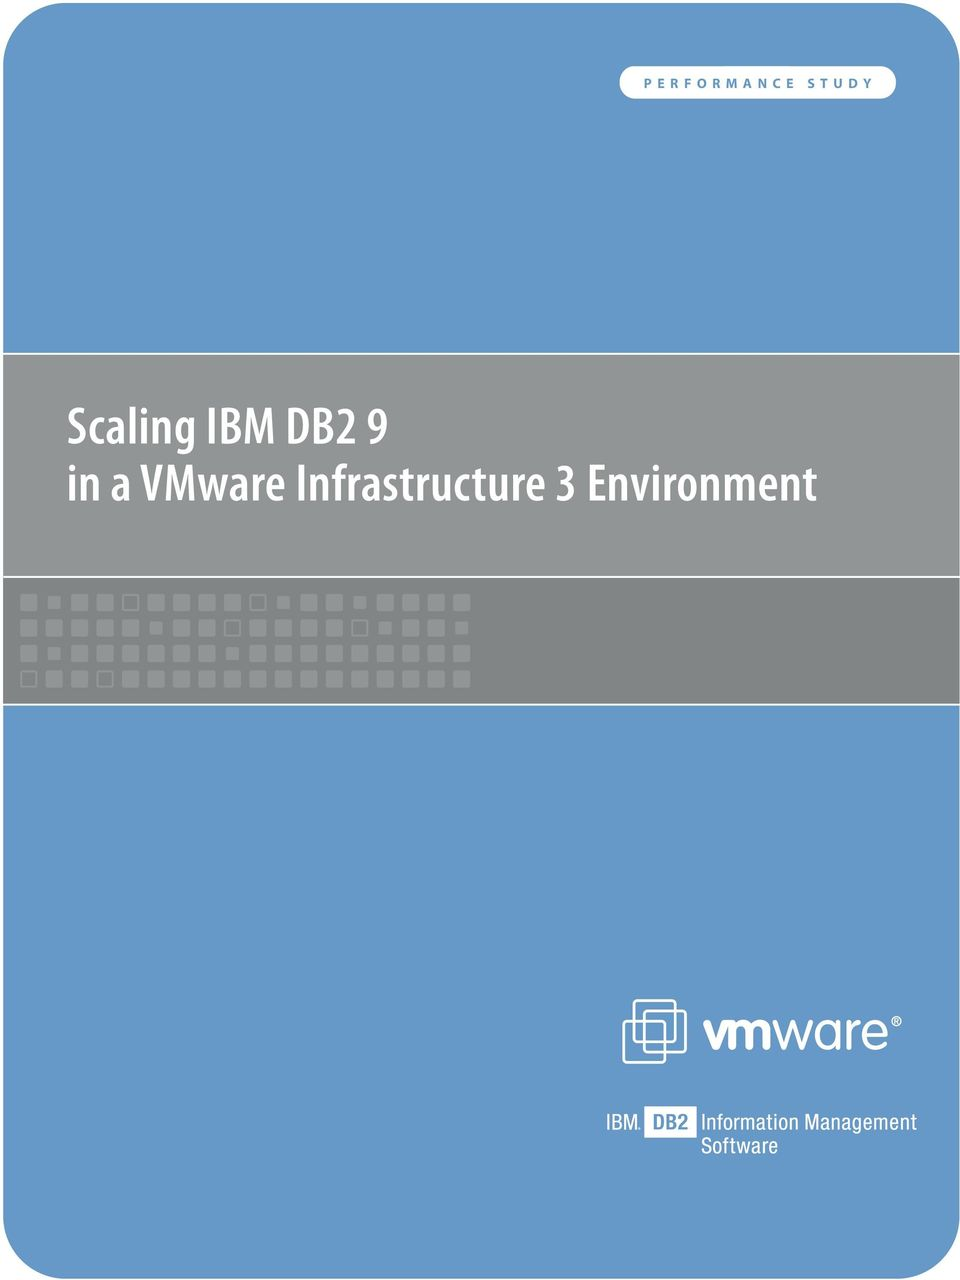 DB2 9 in a VMware